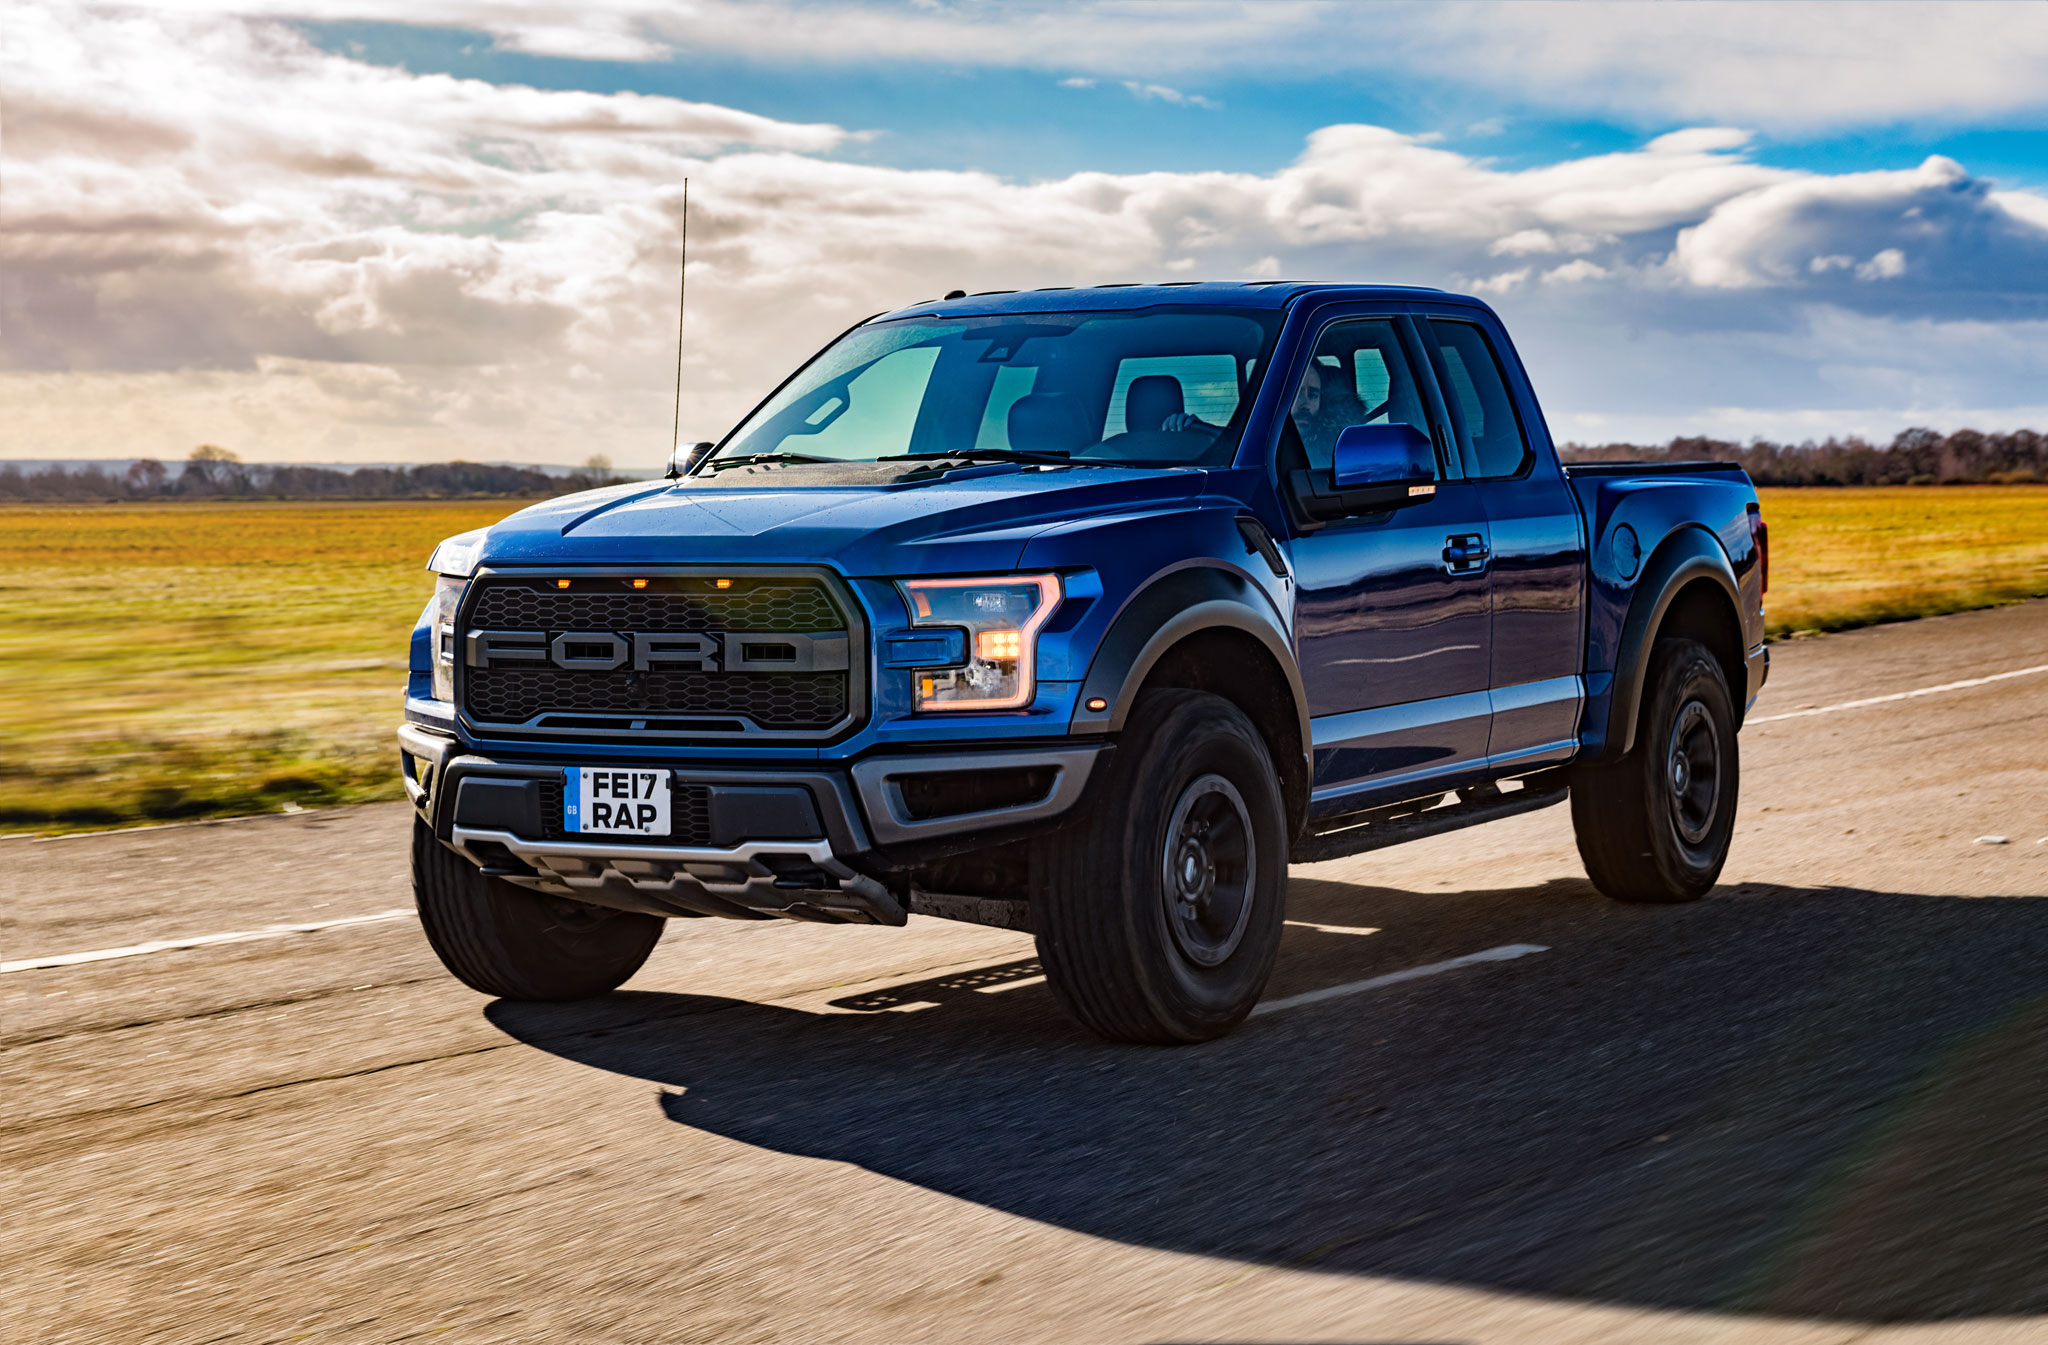 Ford Raptor tracking shot by DeanWrightAutomotive